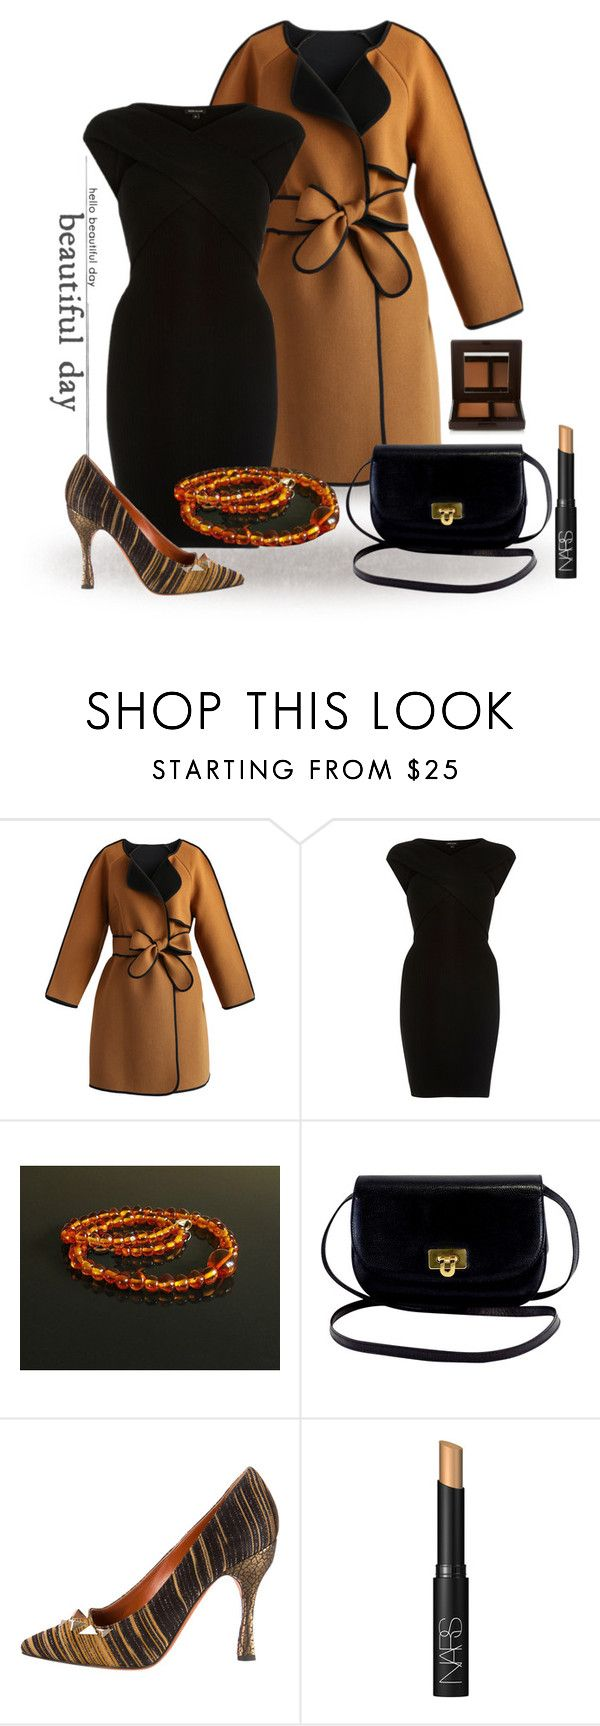 """Black & Brown"" by styledonna on Polyvore featuring moda, Chicwish, River Island, Missoni, NARS Cosmetics i Laura Mercier"